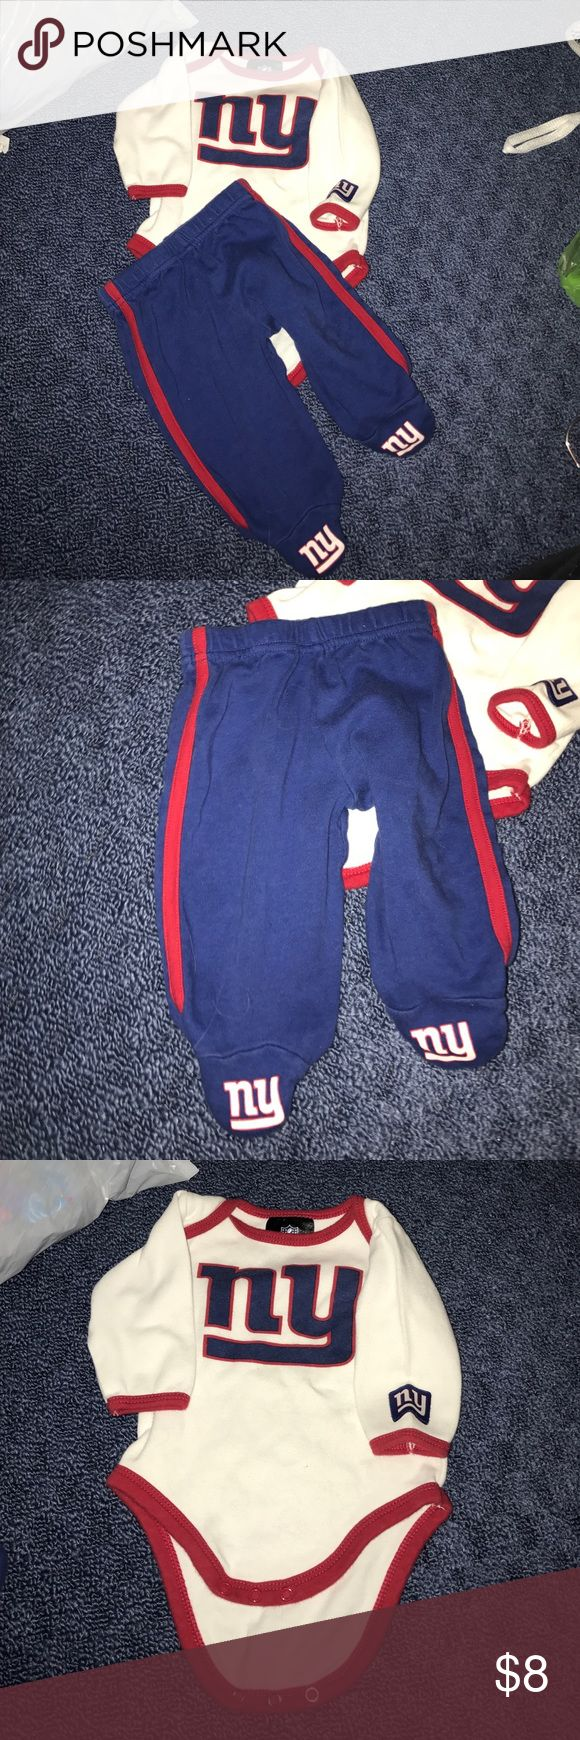 NFL Giants NY two piece outfit NFL apparel 0/3 months nfl Matching Sets